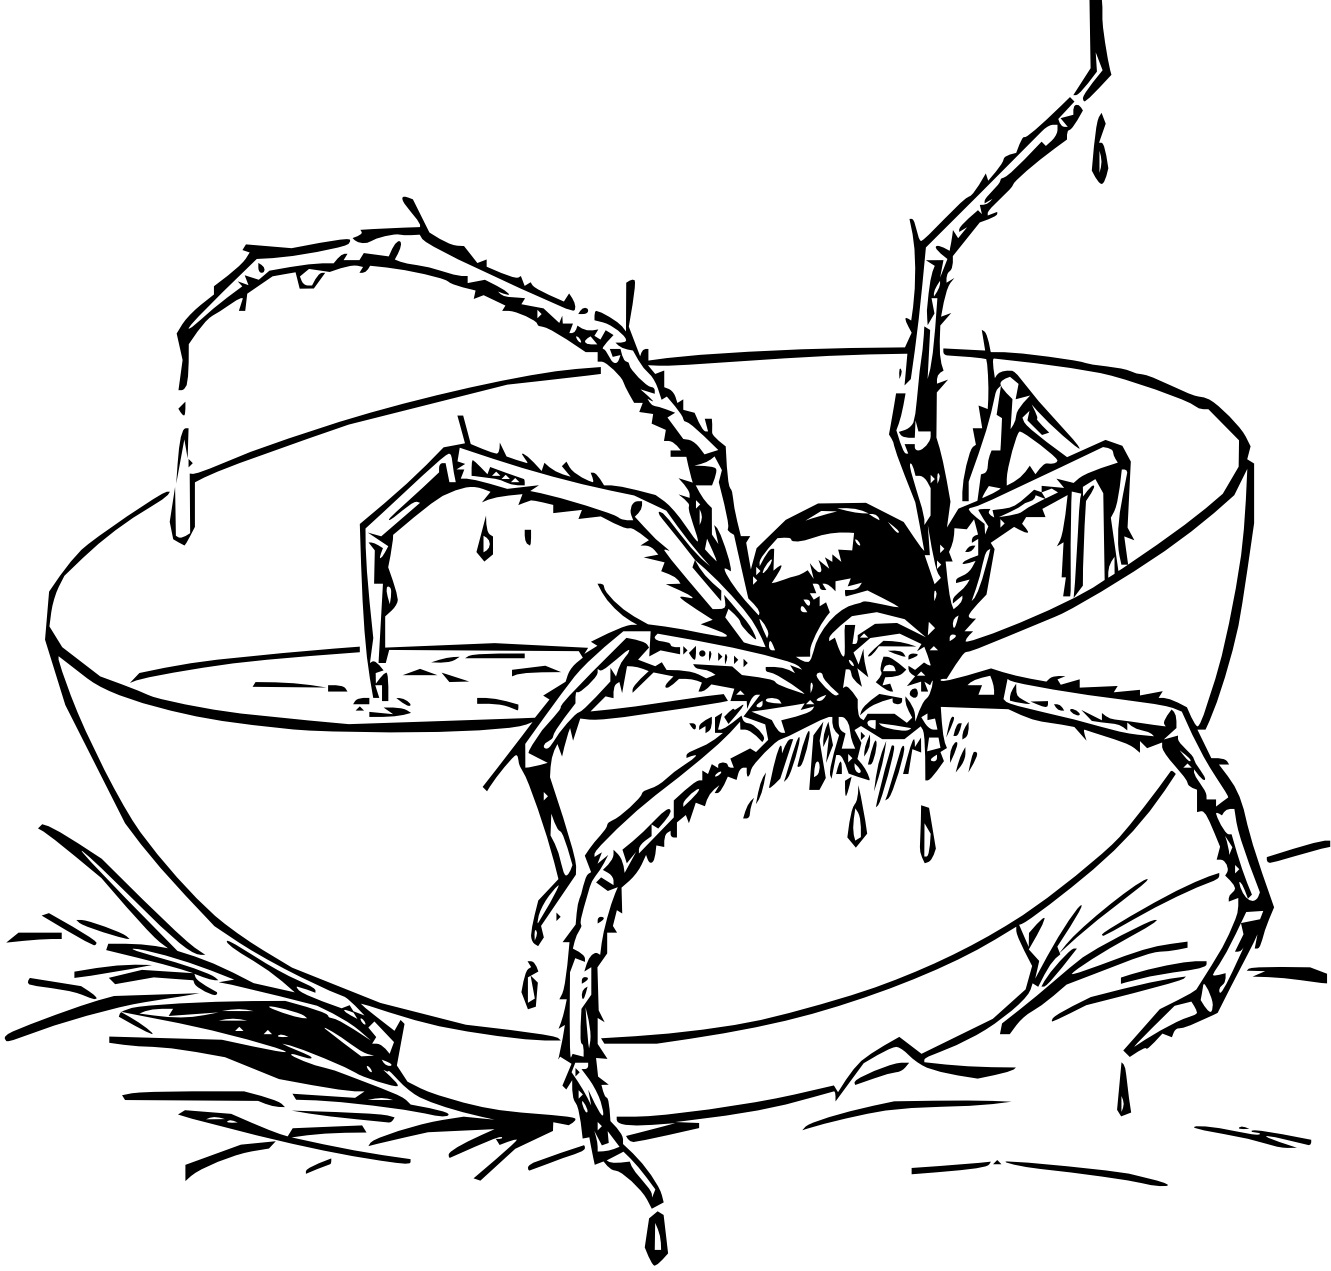 coloring page spider top 10 free printable spider coloring pages online page coloring spider